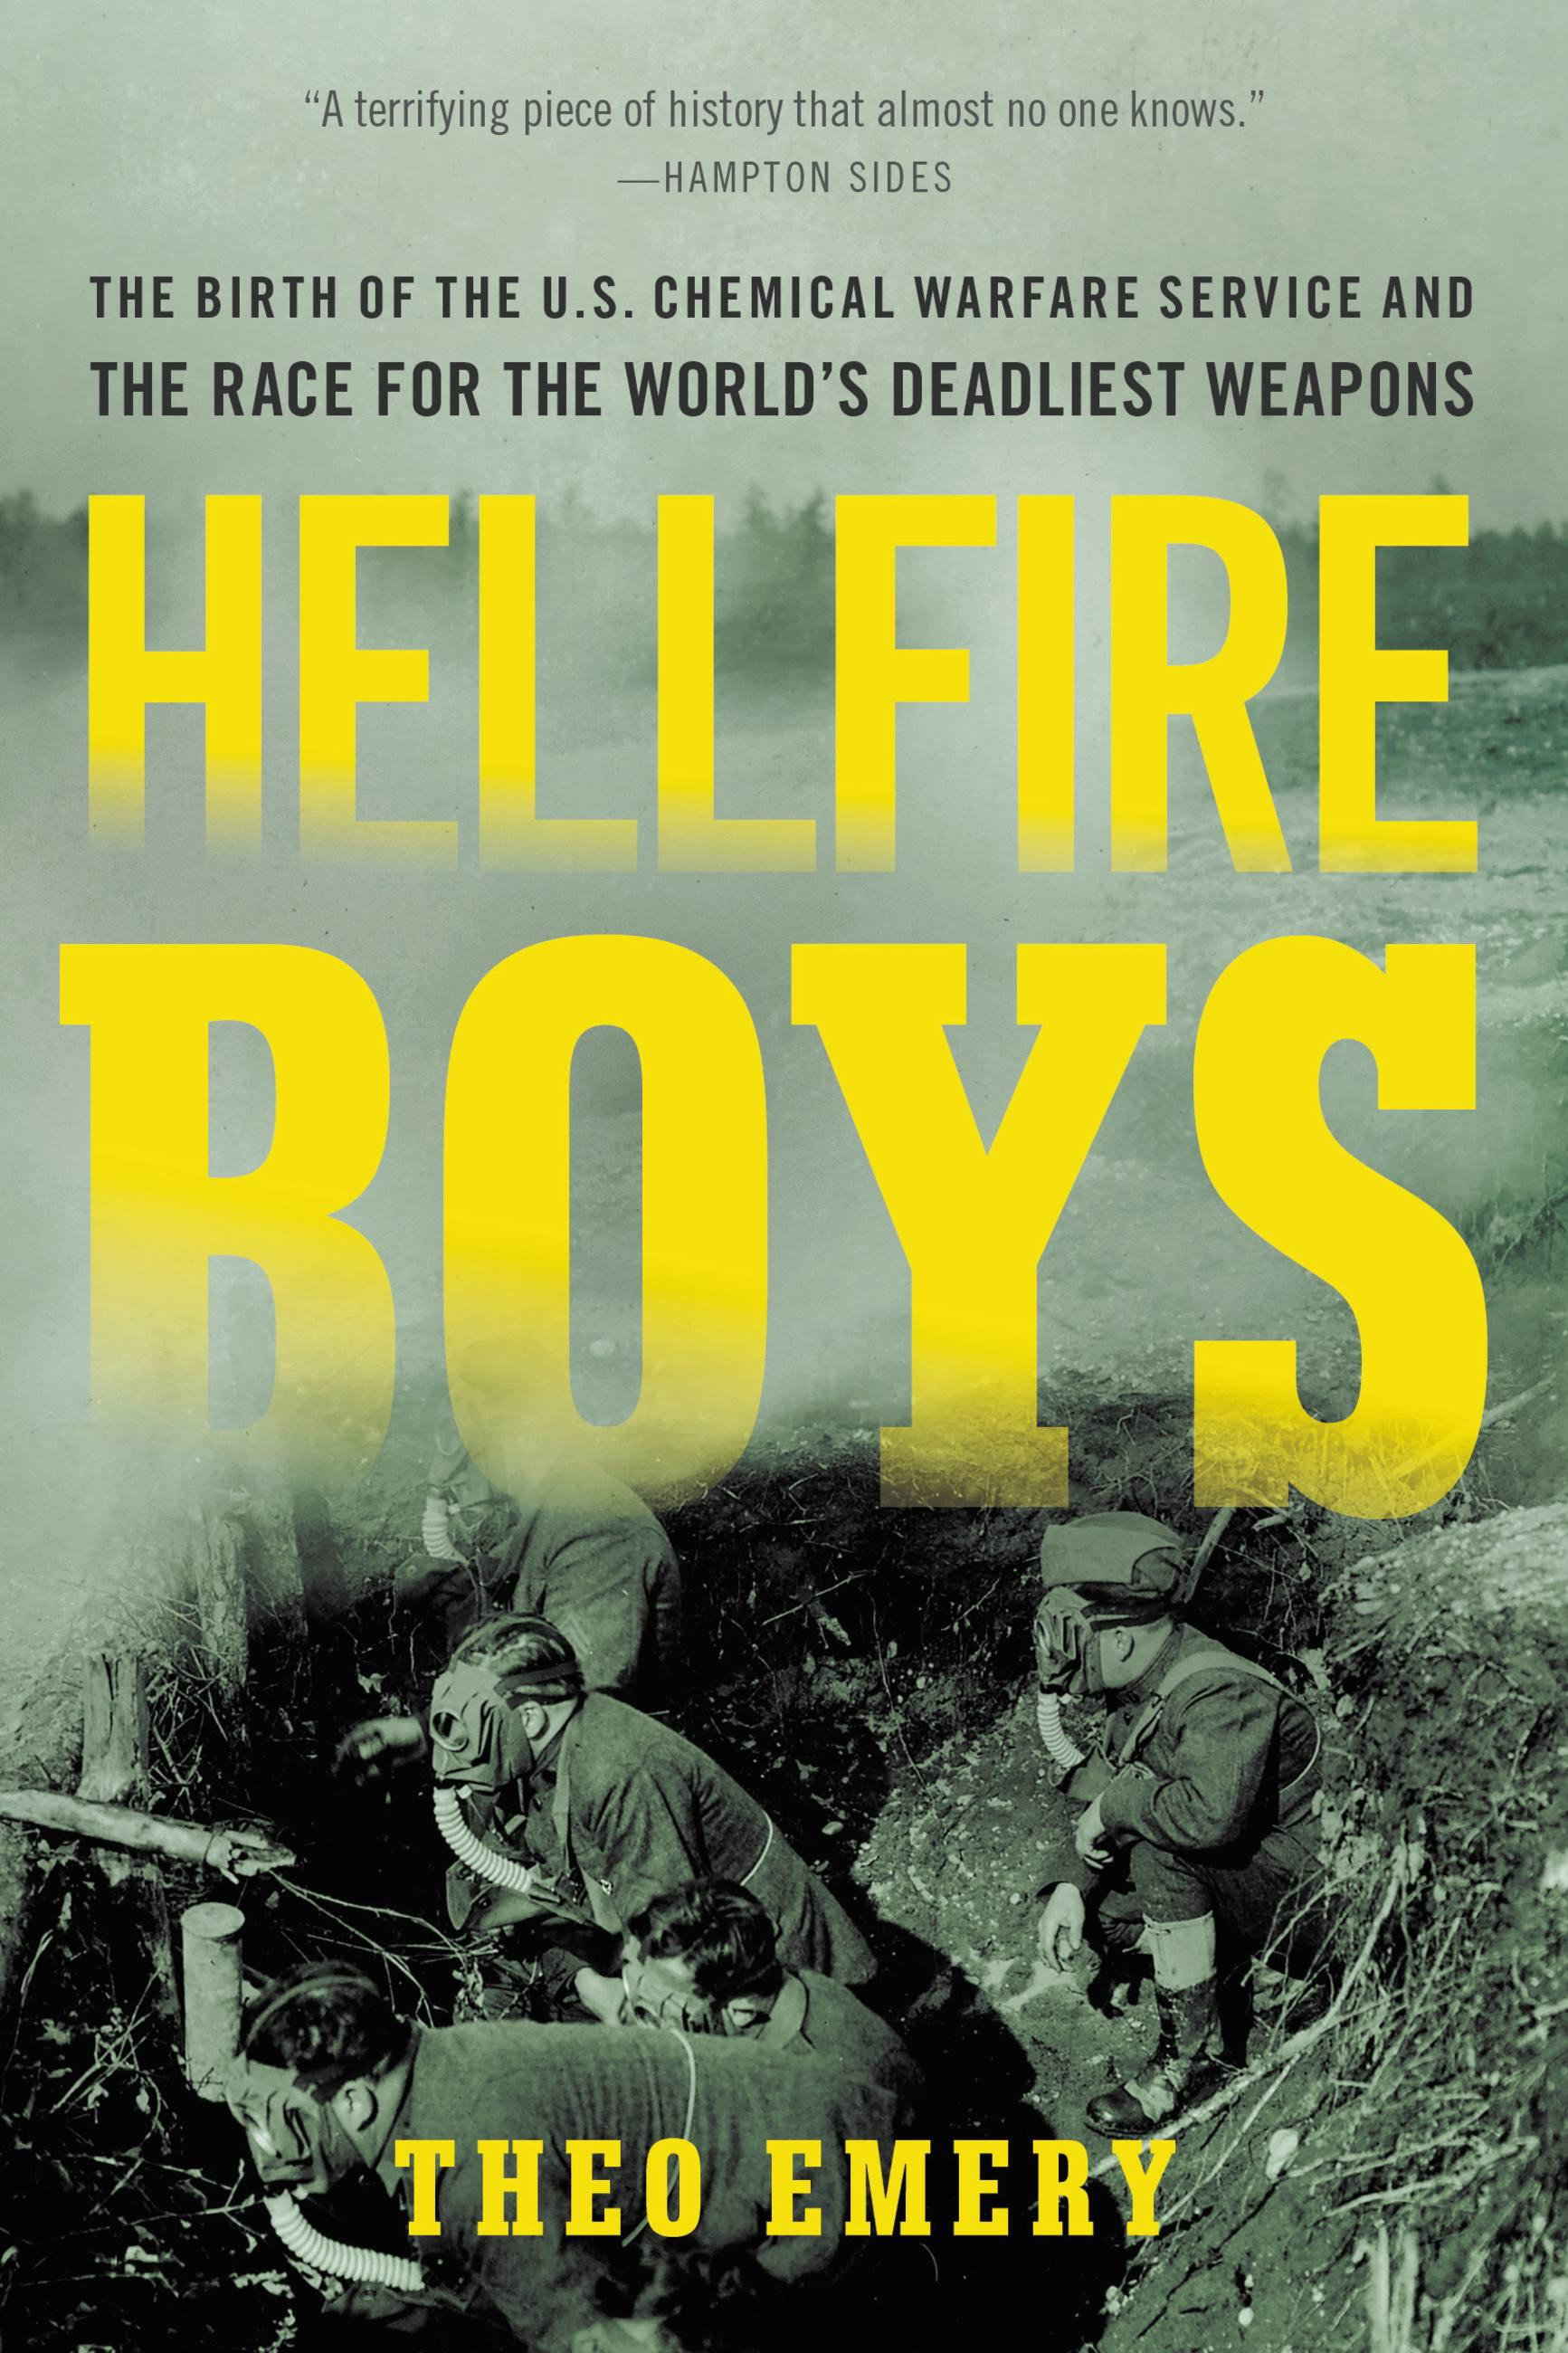 Hellfire Boys The Birth of the U.S. Chemical Warfare Service and the Race for the World¿s Deadliest Weapons